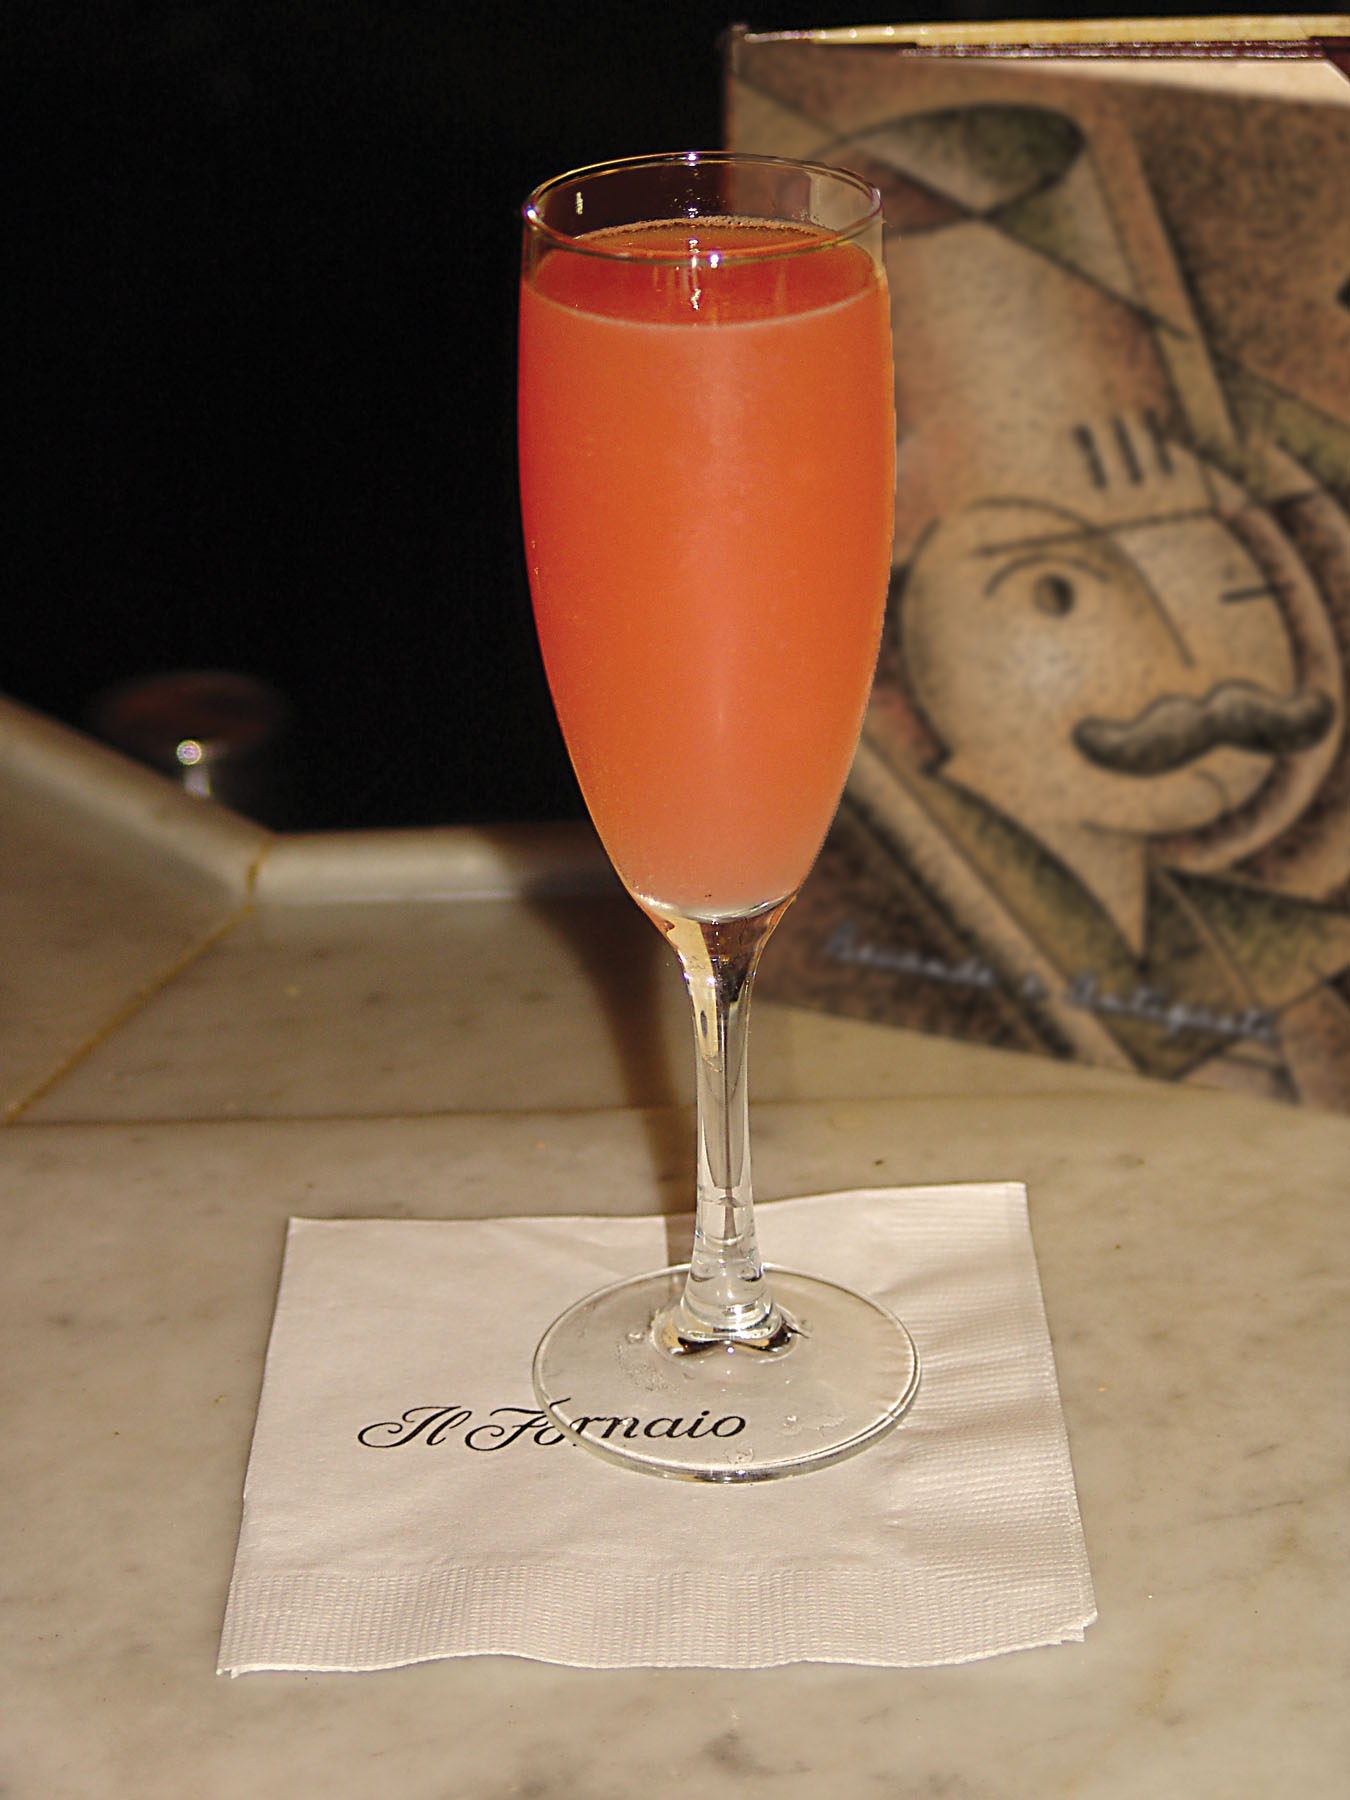 artist giovanni bellini he decided to name the drink bellini